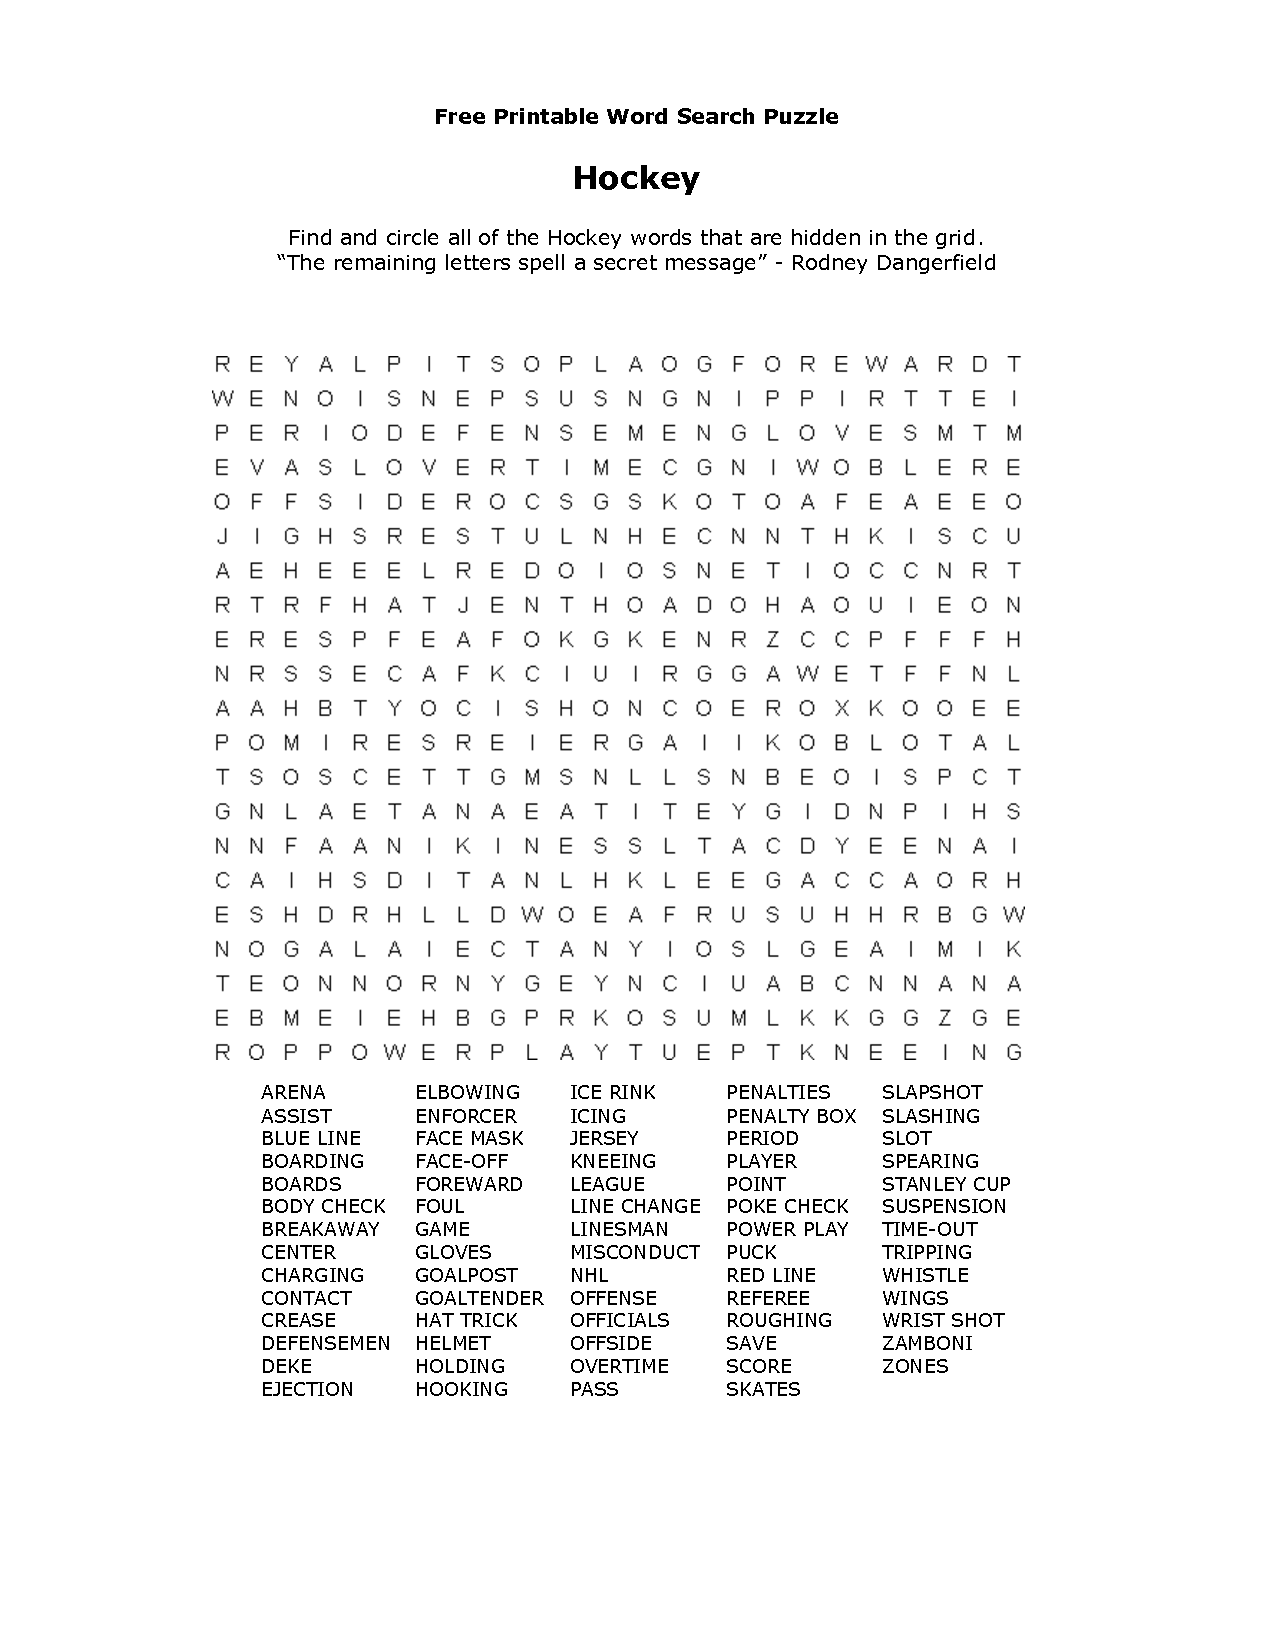 Free Printable Word Searches